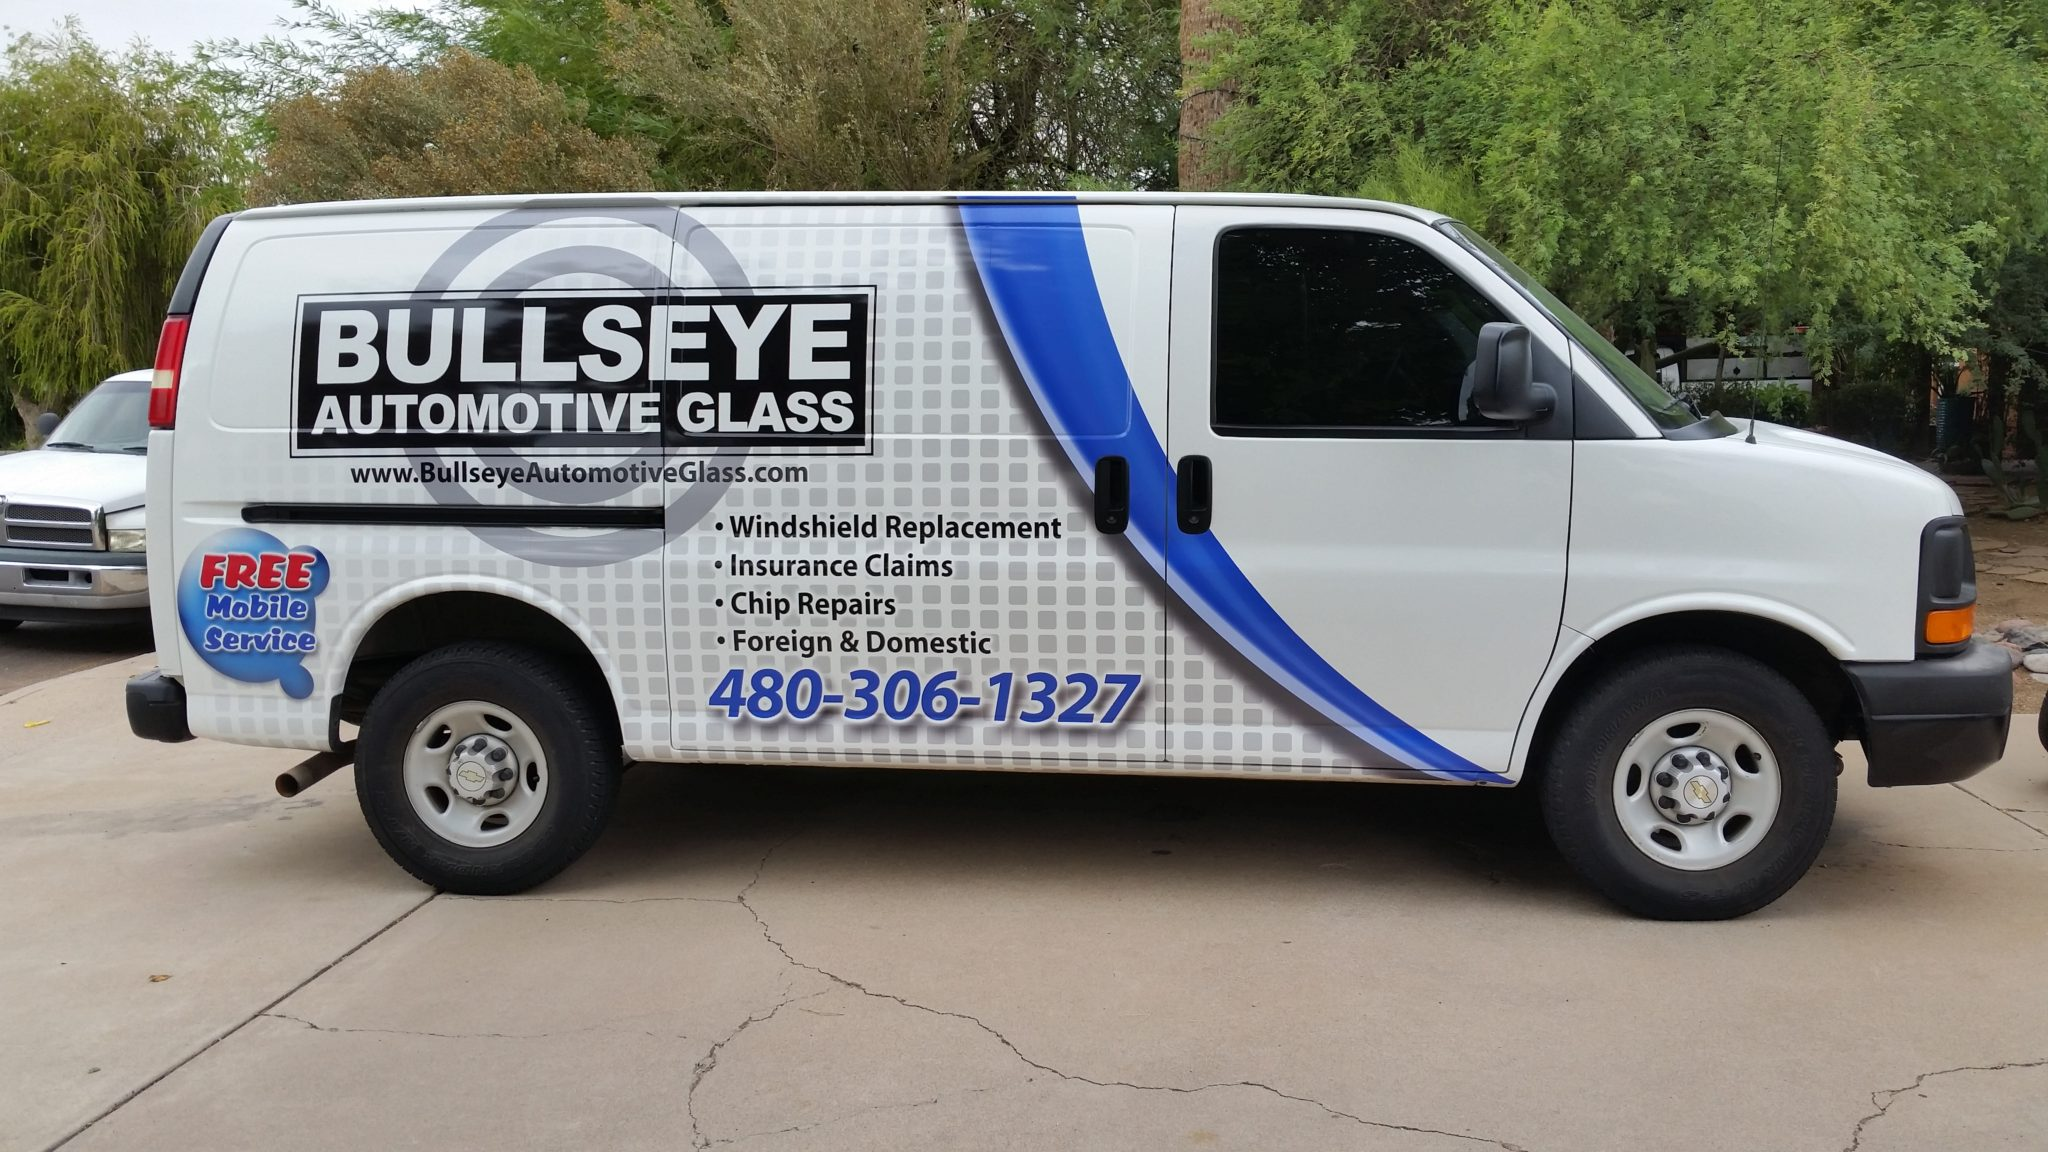 Windshield Repair Quote Unique How To Get An Auto Glass Replacement And Windshield Repair Quote